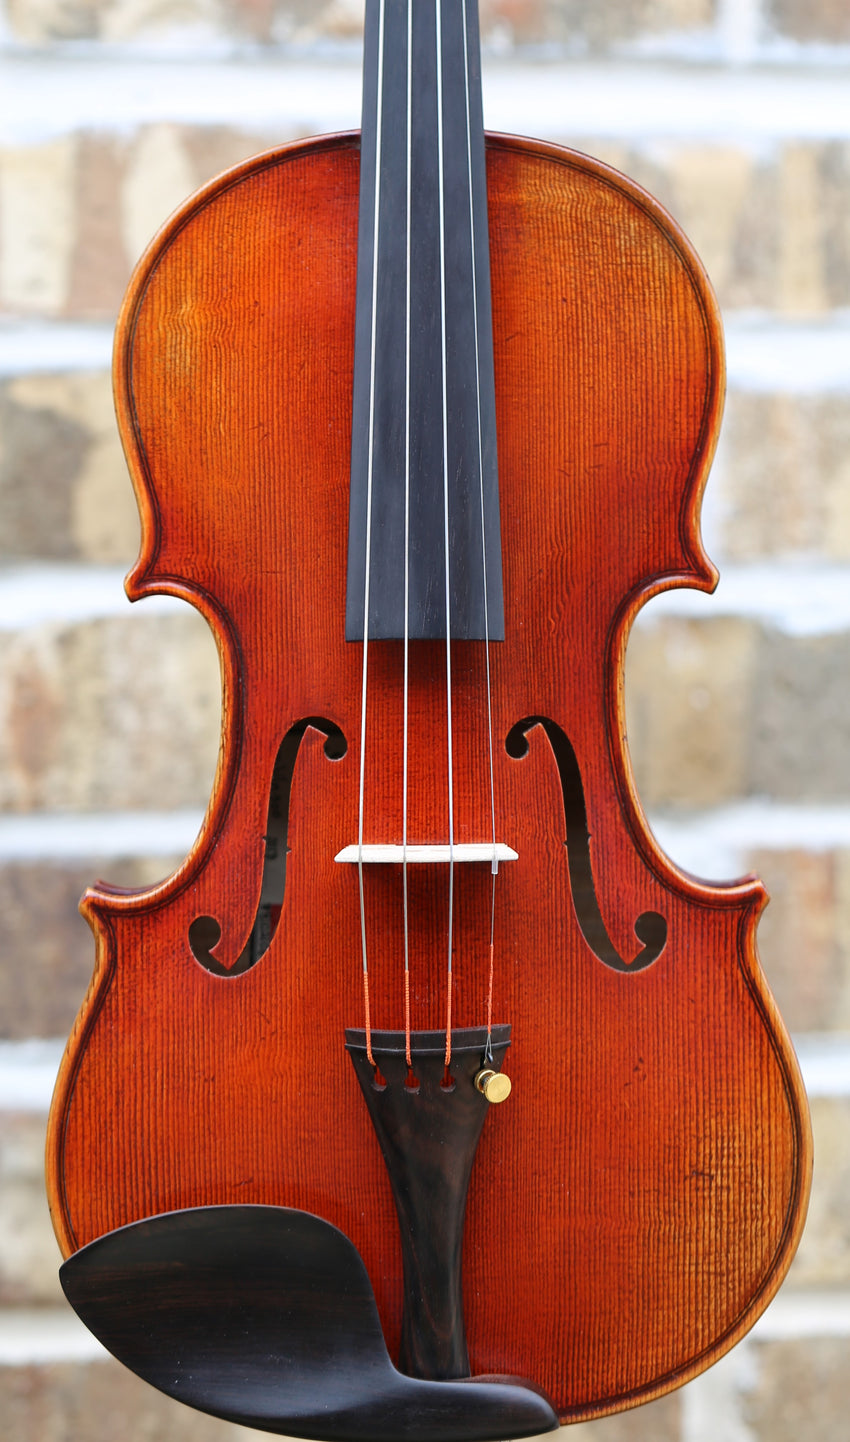 Sam's Strings Violin - Model Vln300